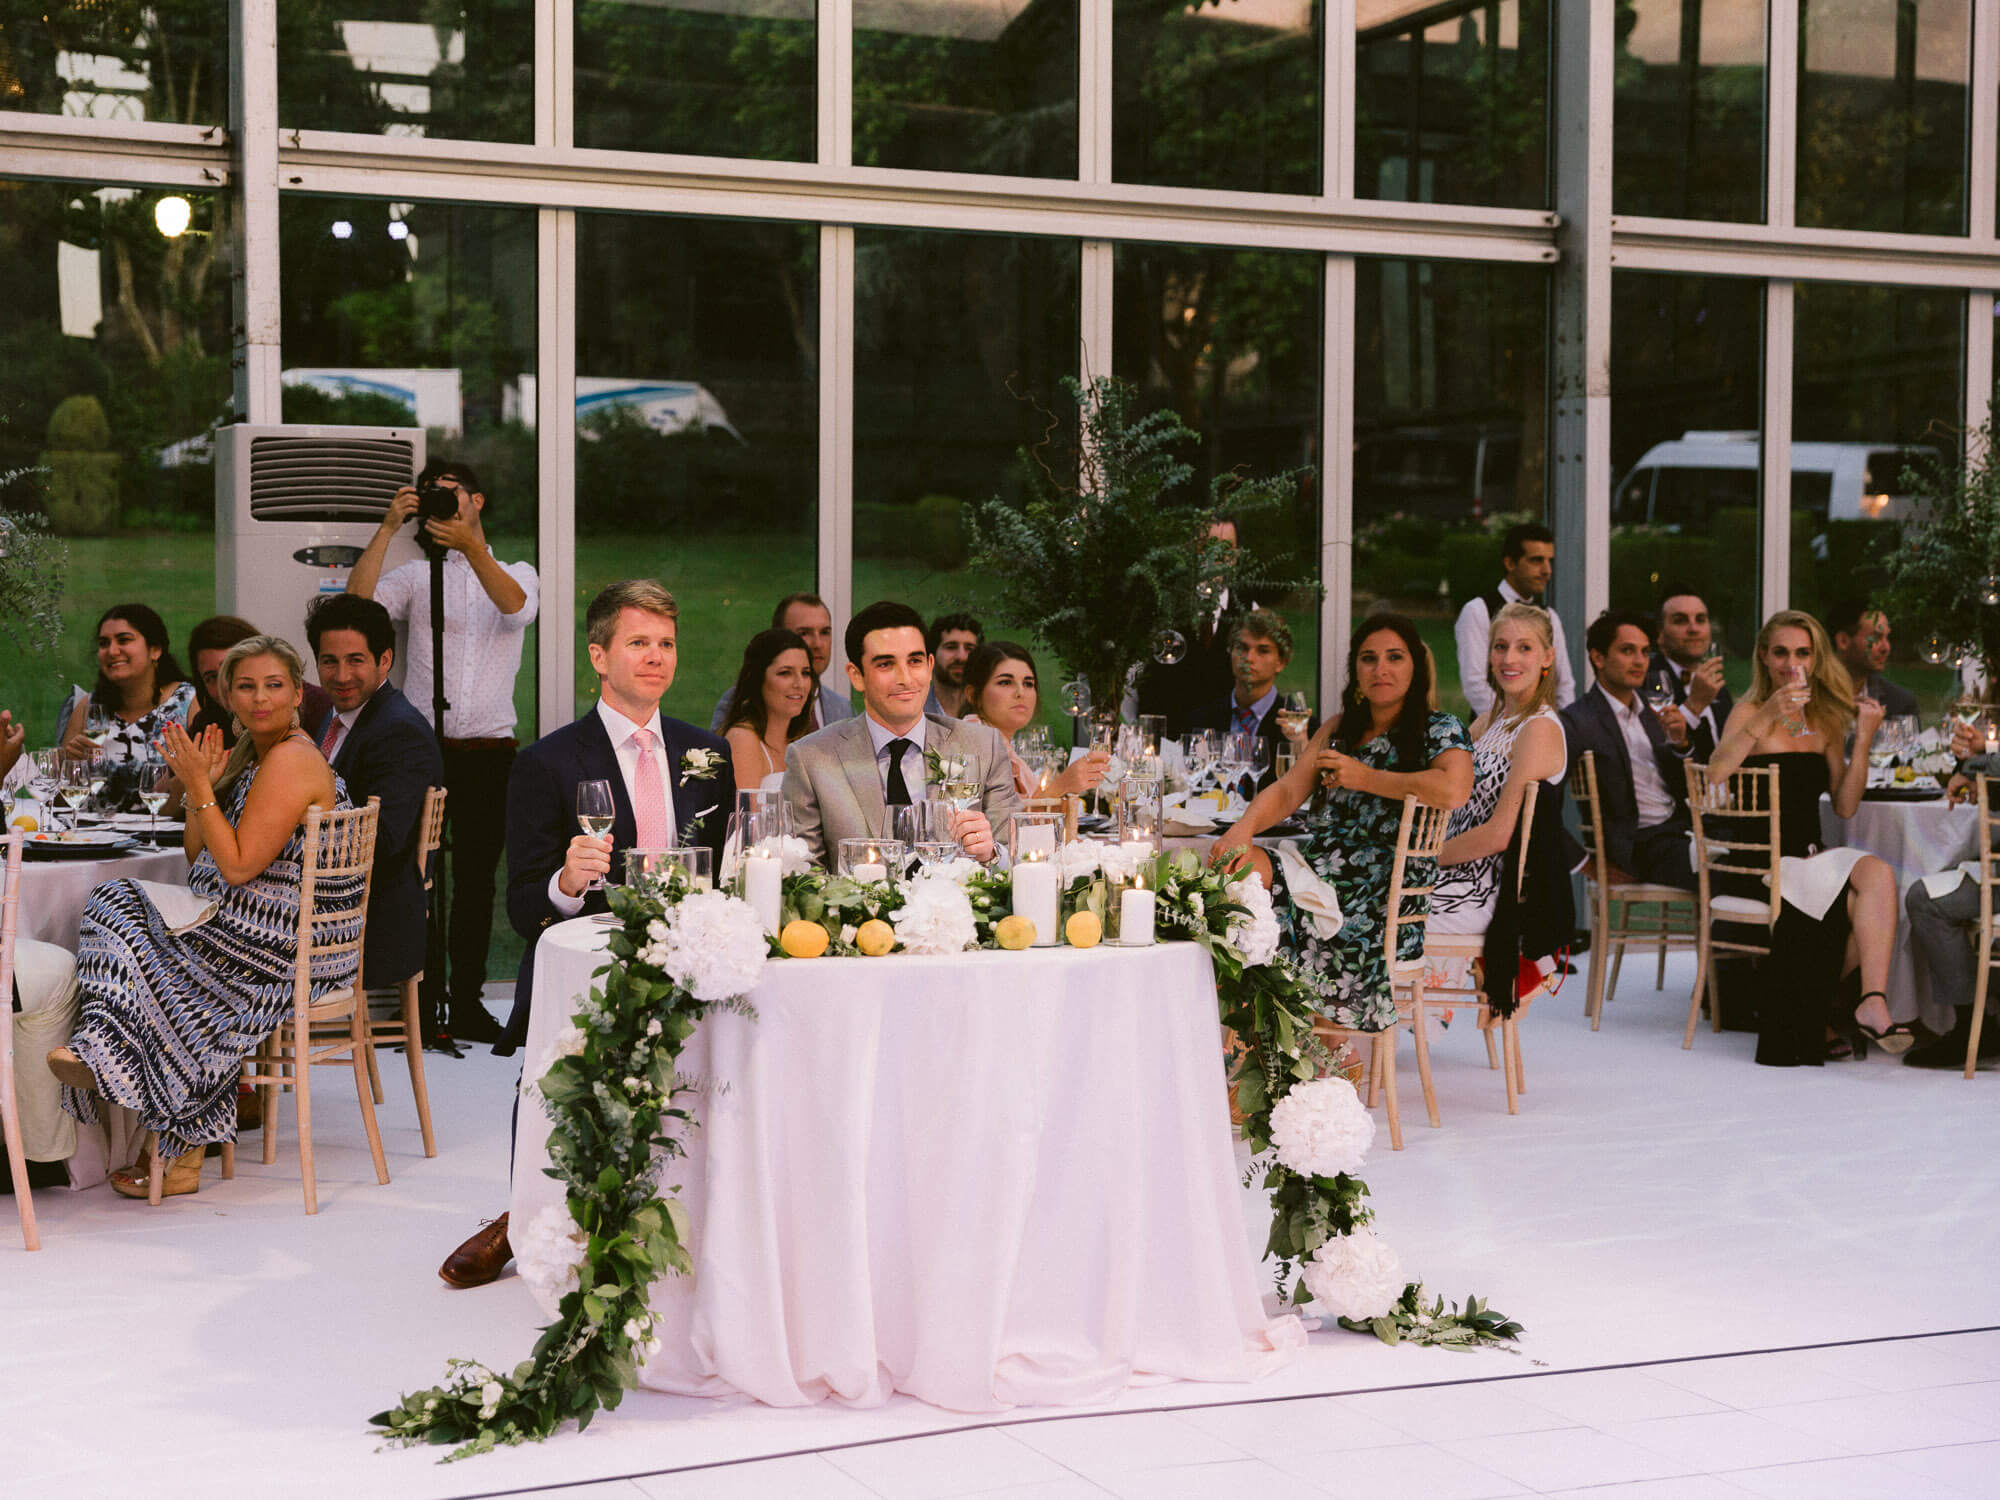 the wedding reception overview of couple and guests in Seteais Palace Sintra by Portugal Wedding Photographer